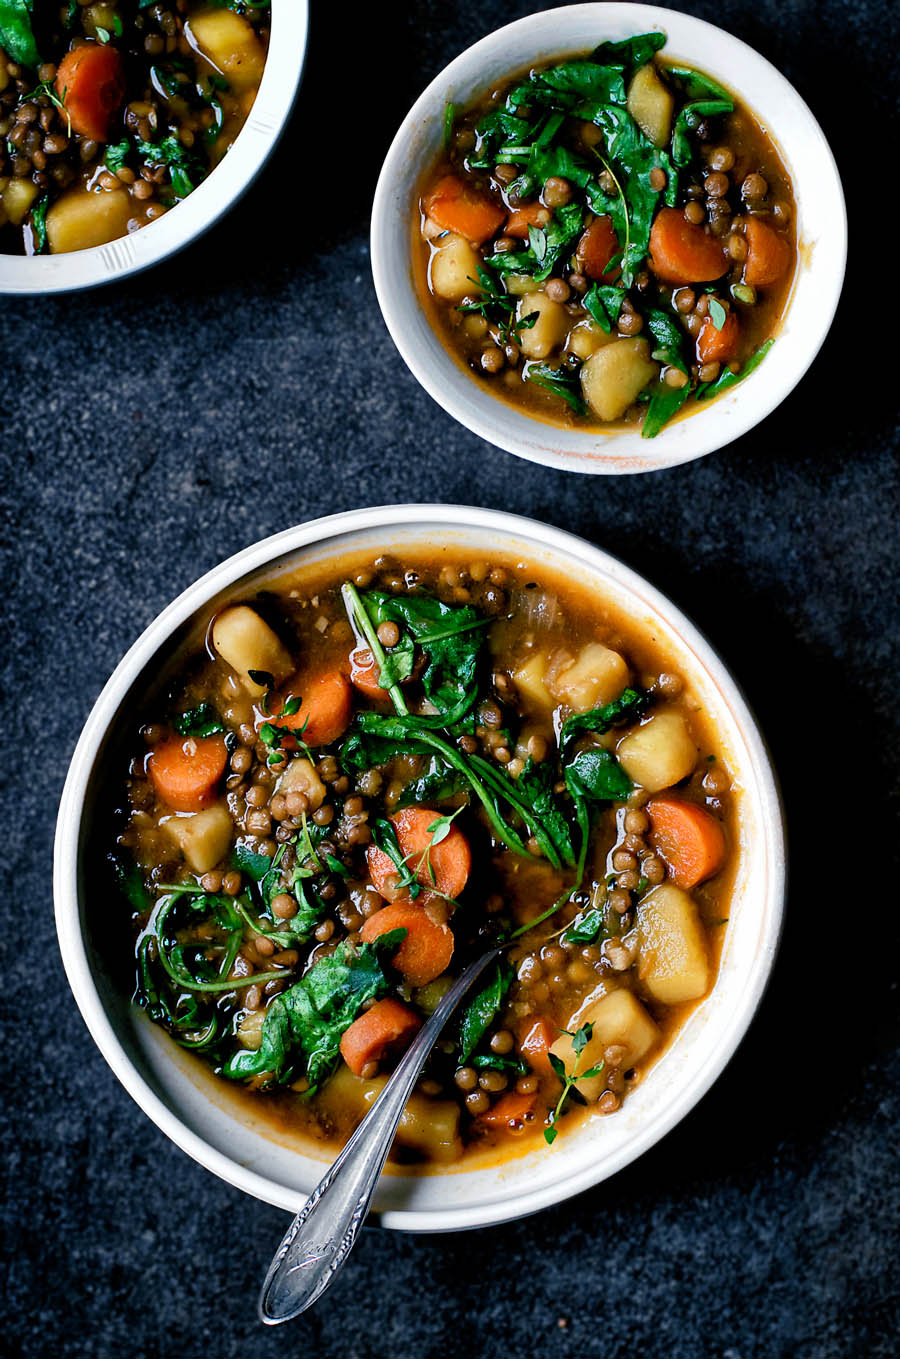 Three bowls of lentil, carrot, and potato stew.